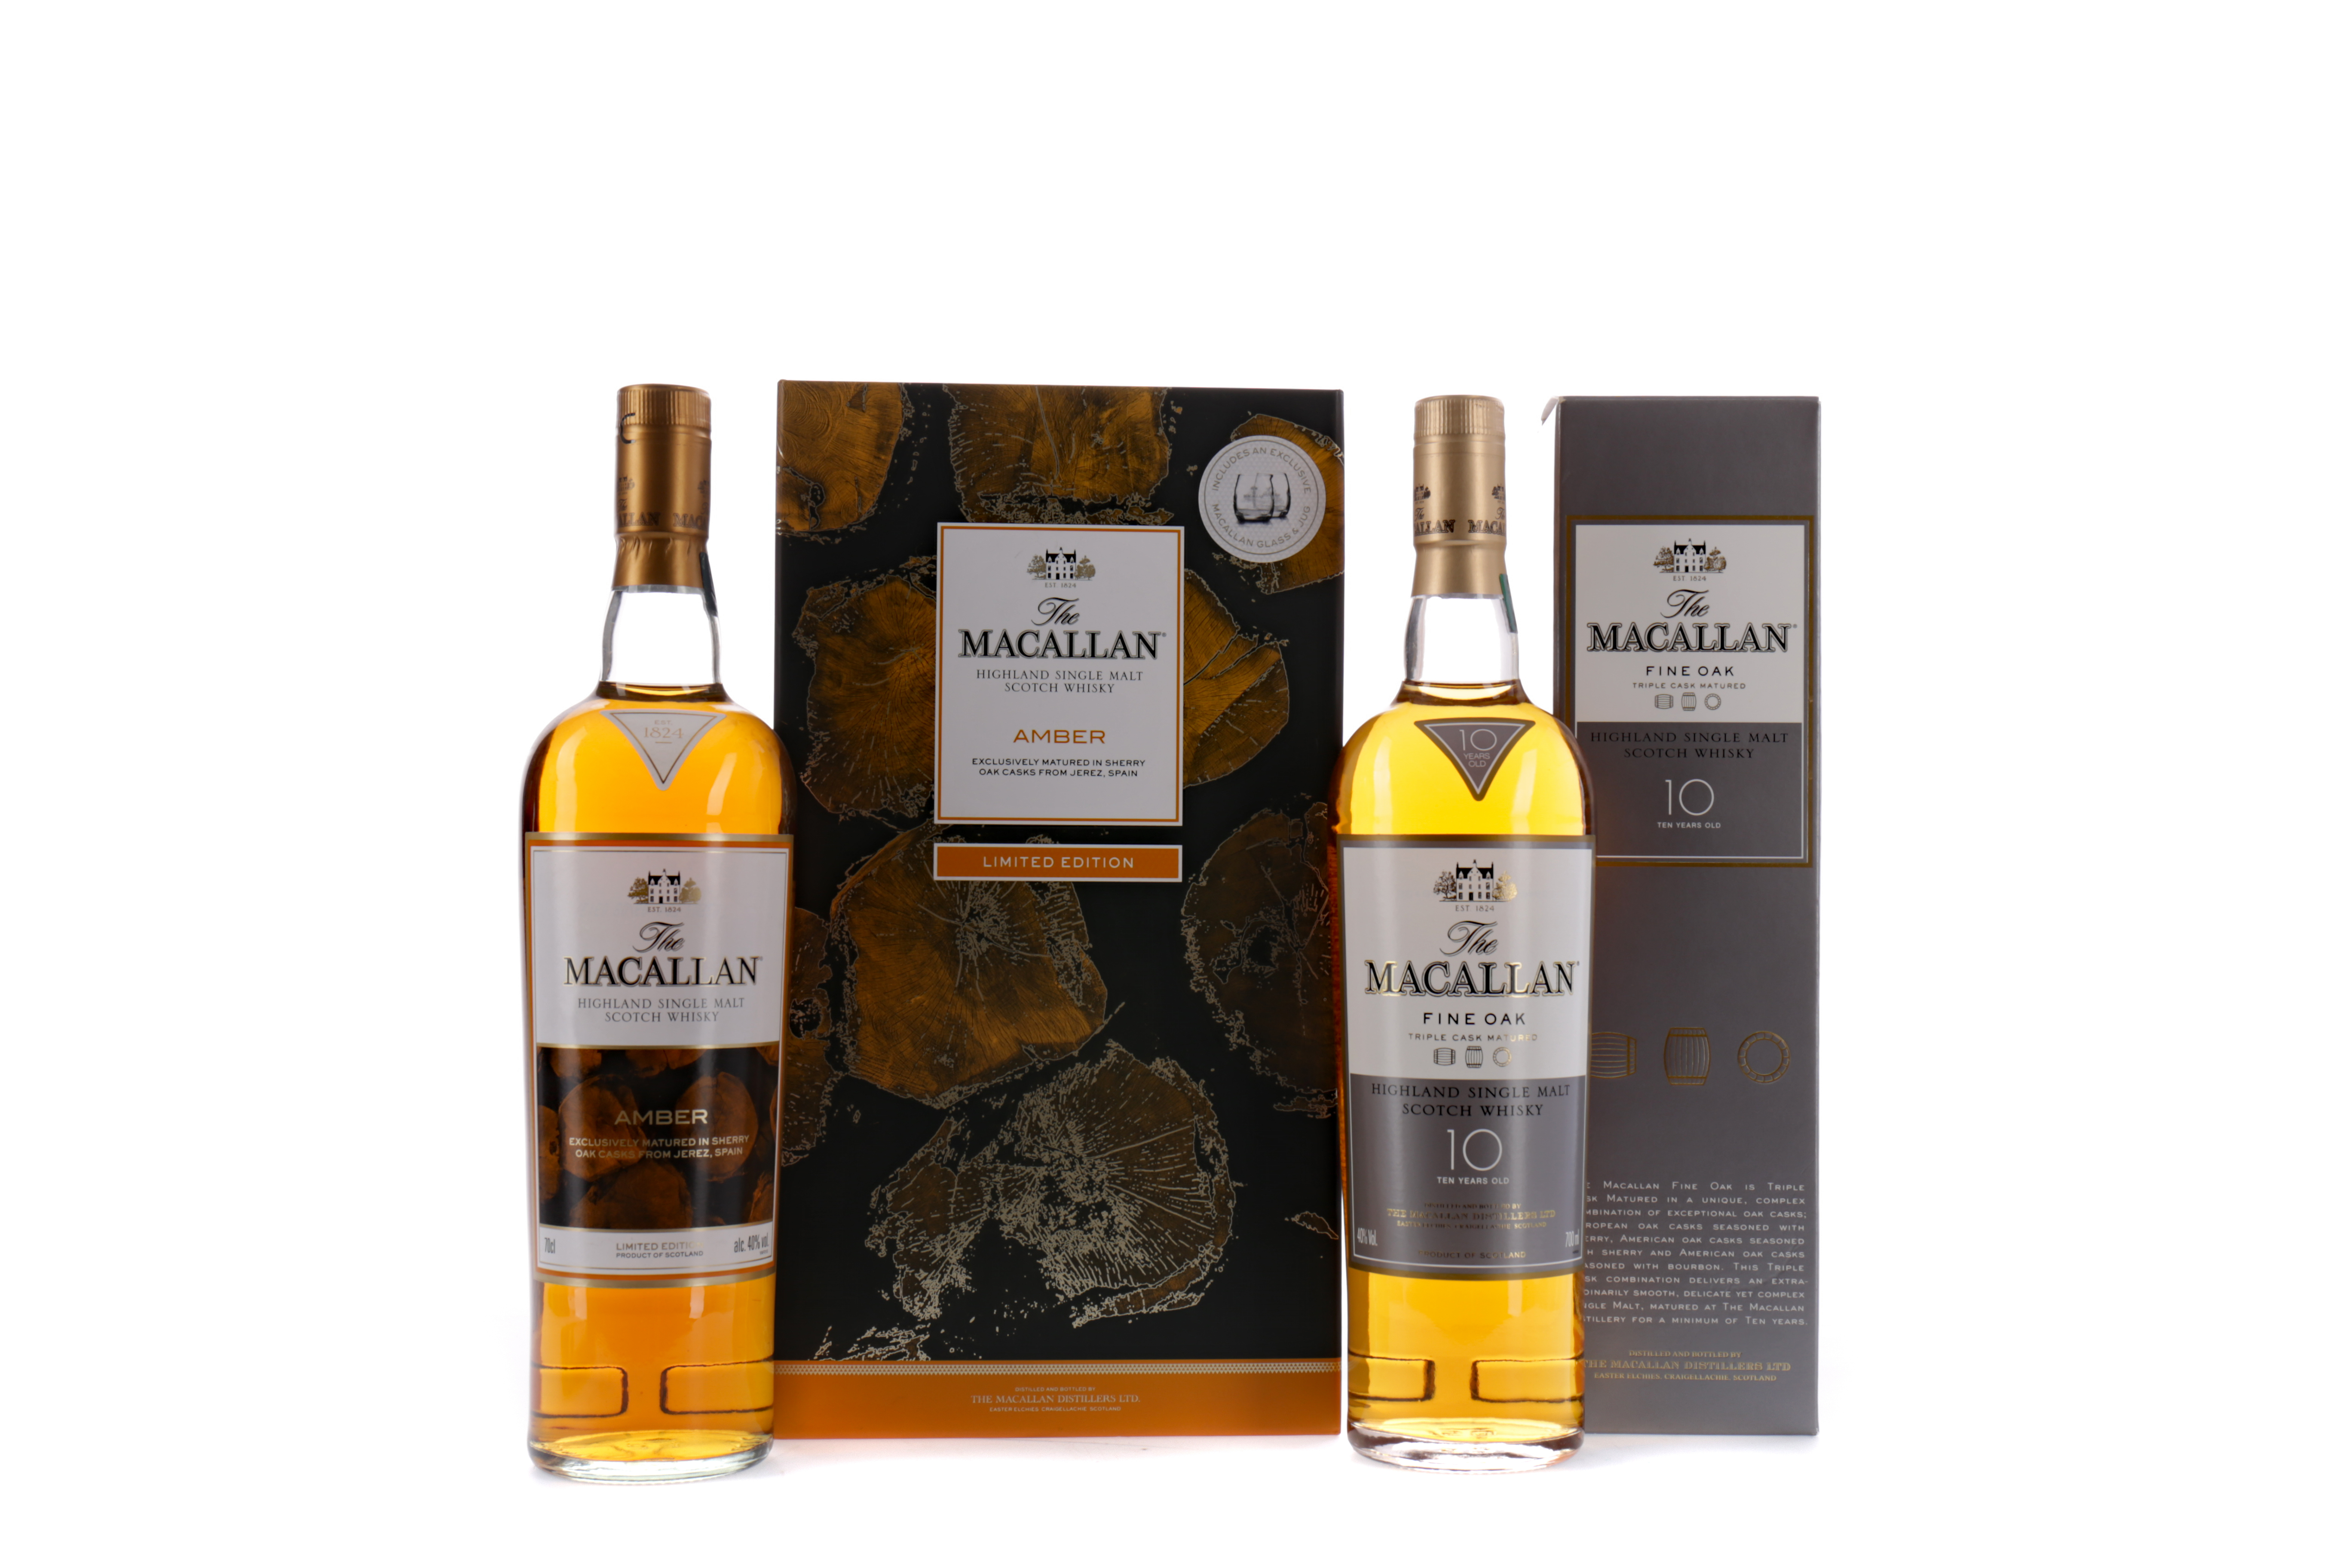 MACALLAN AMBER SPECIAL EDITION JUG AND GLASS SET, AND MACALLAN FINE OAK AGED 10 YEARS